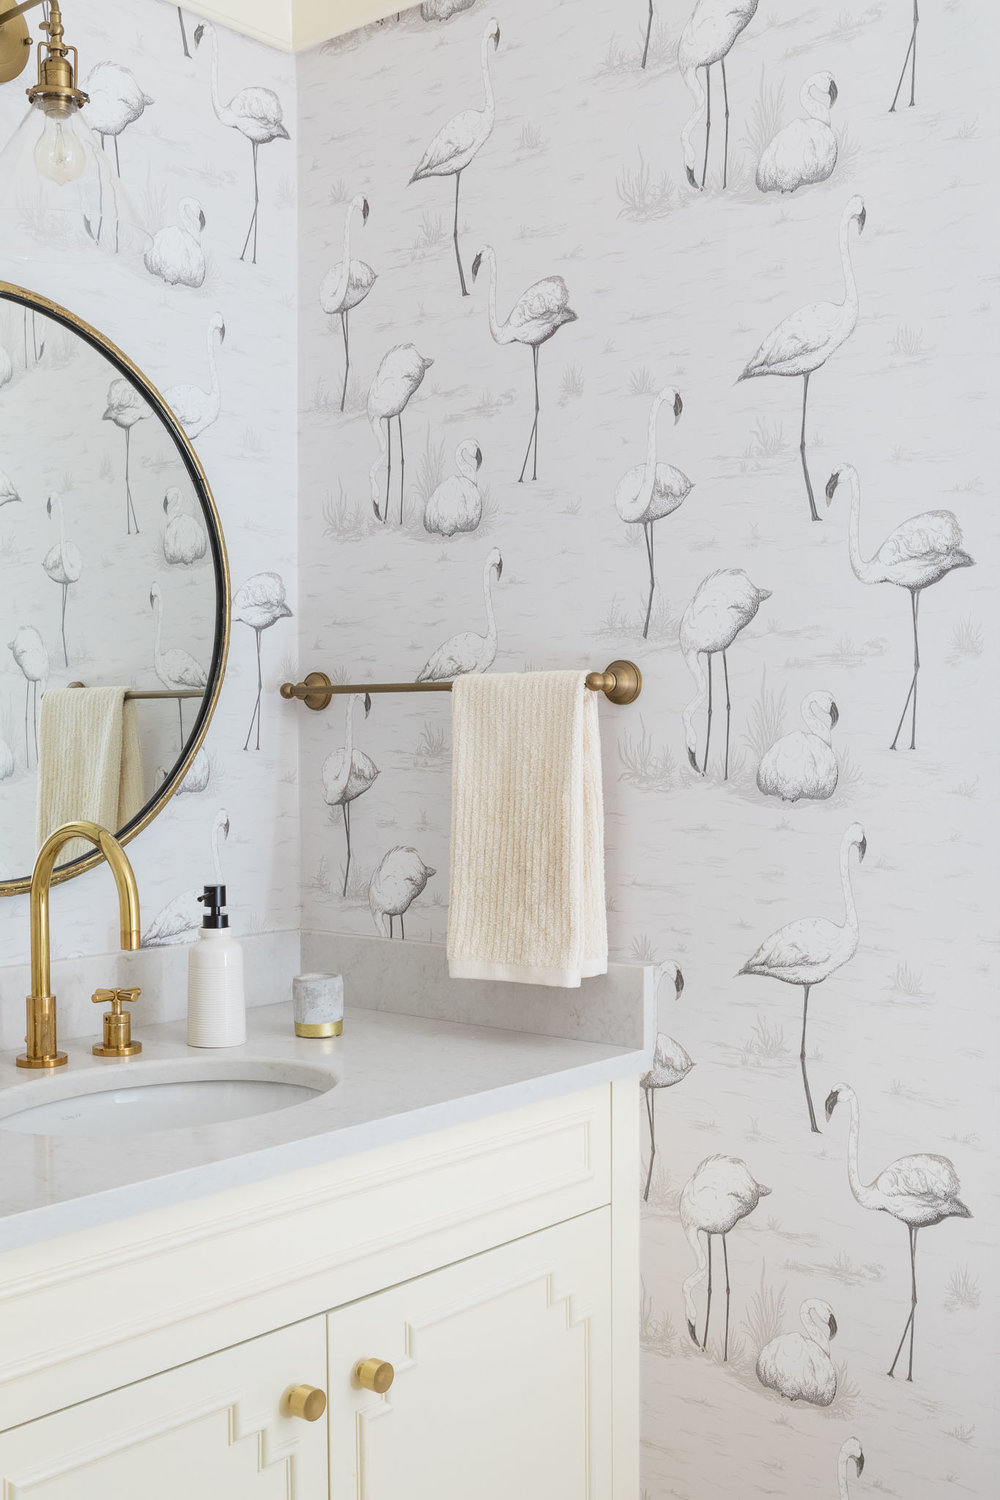 bathroom-powder room-wallpaper-flamingoes-brass accents.jpg